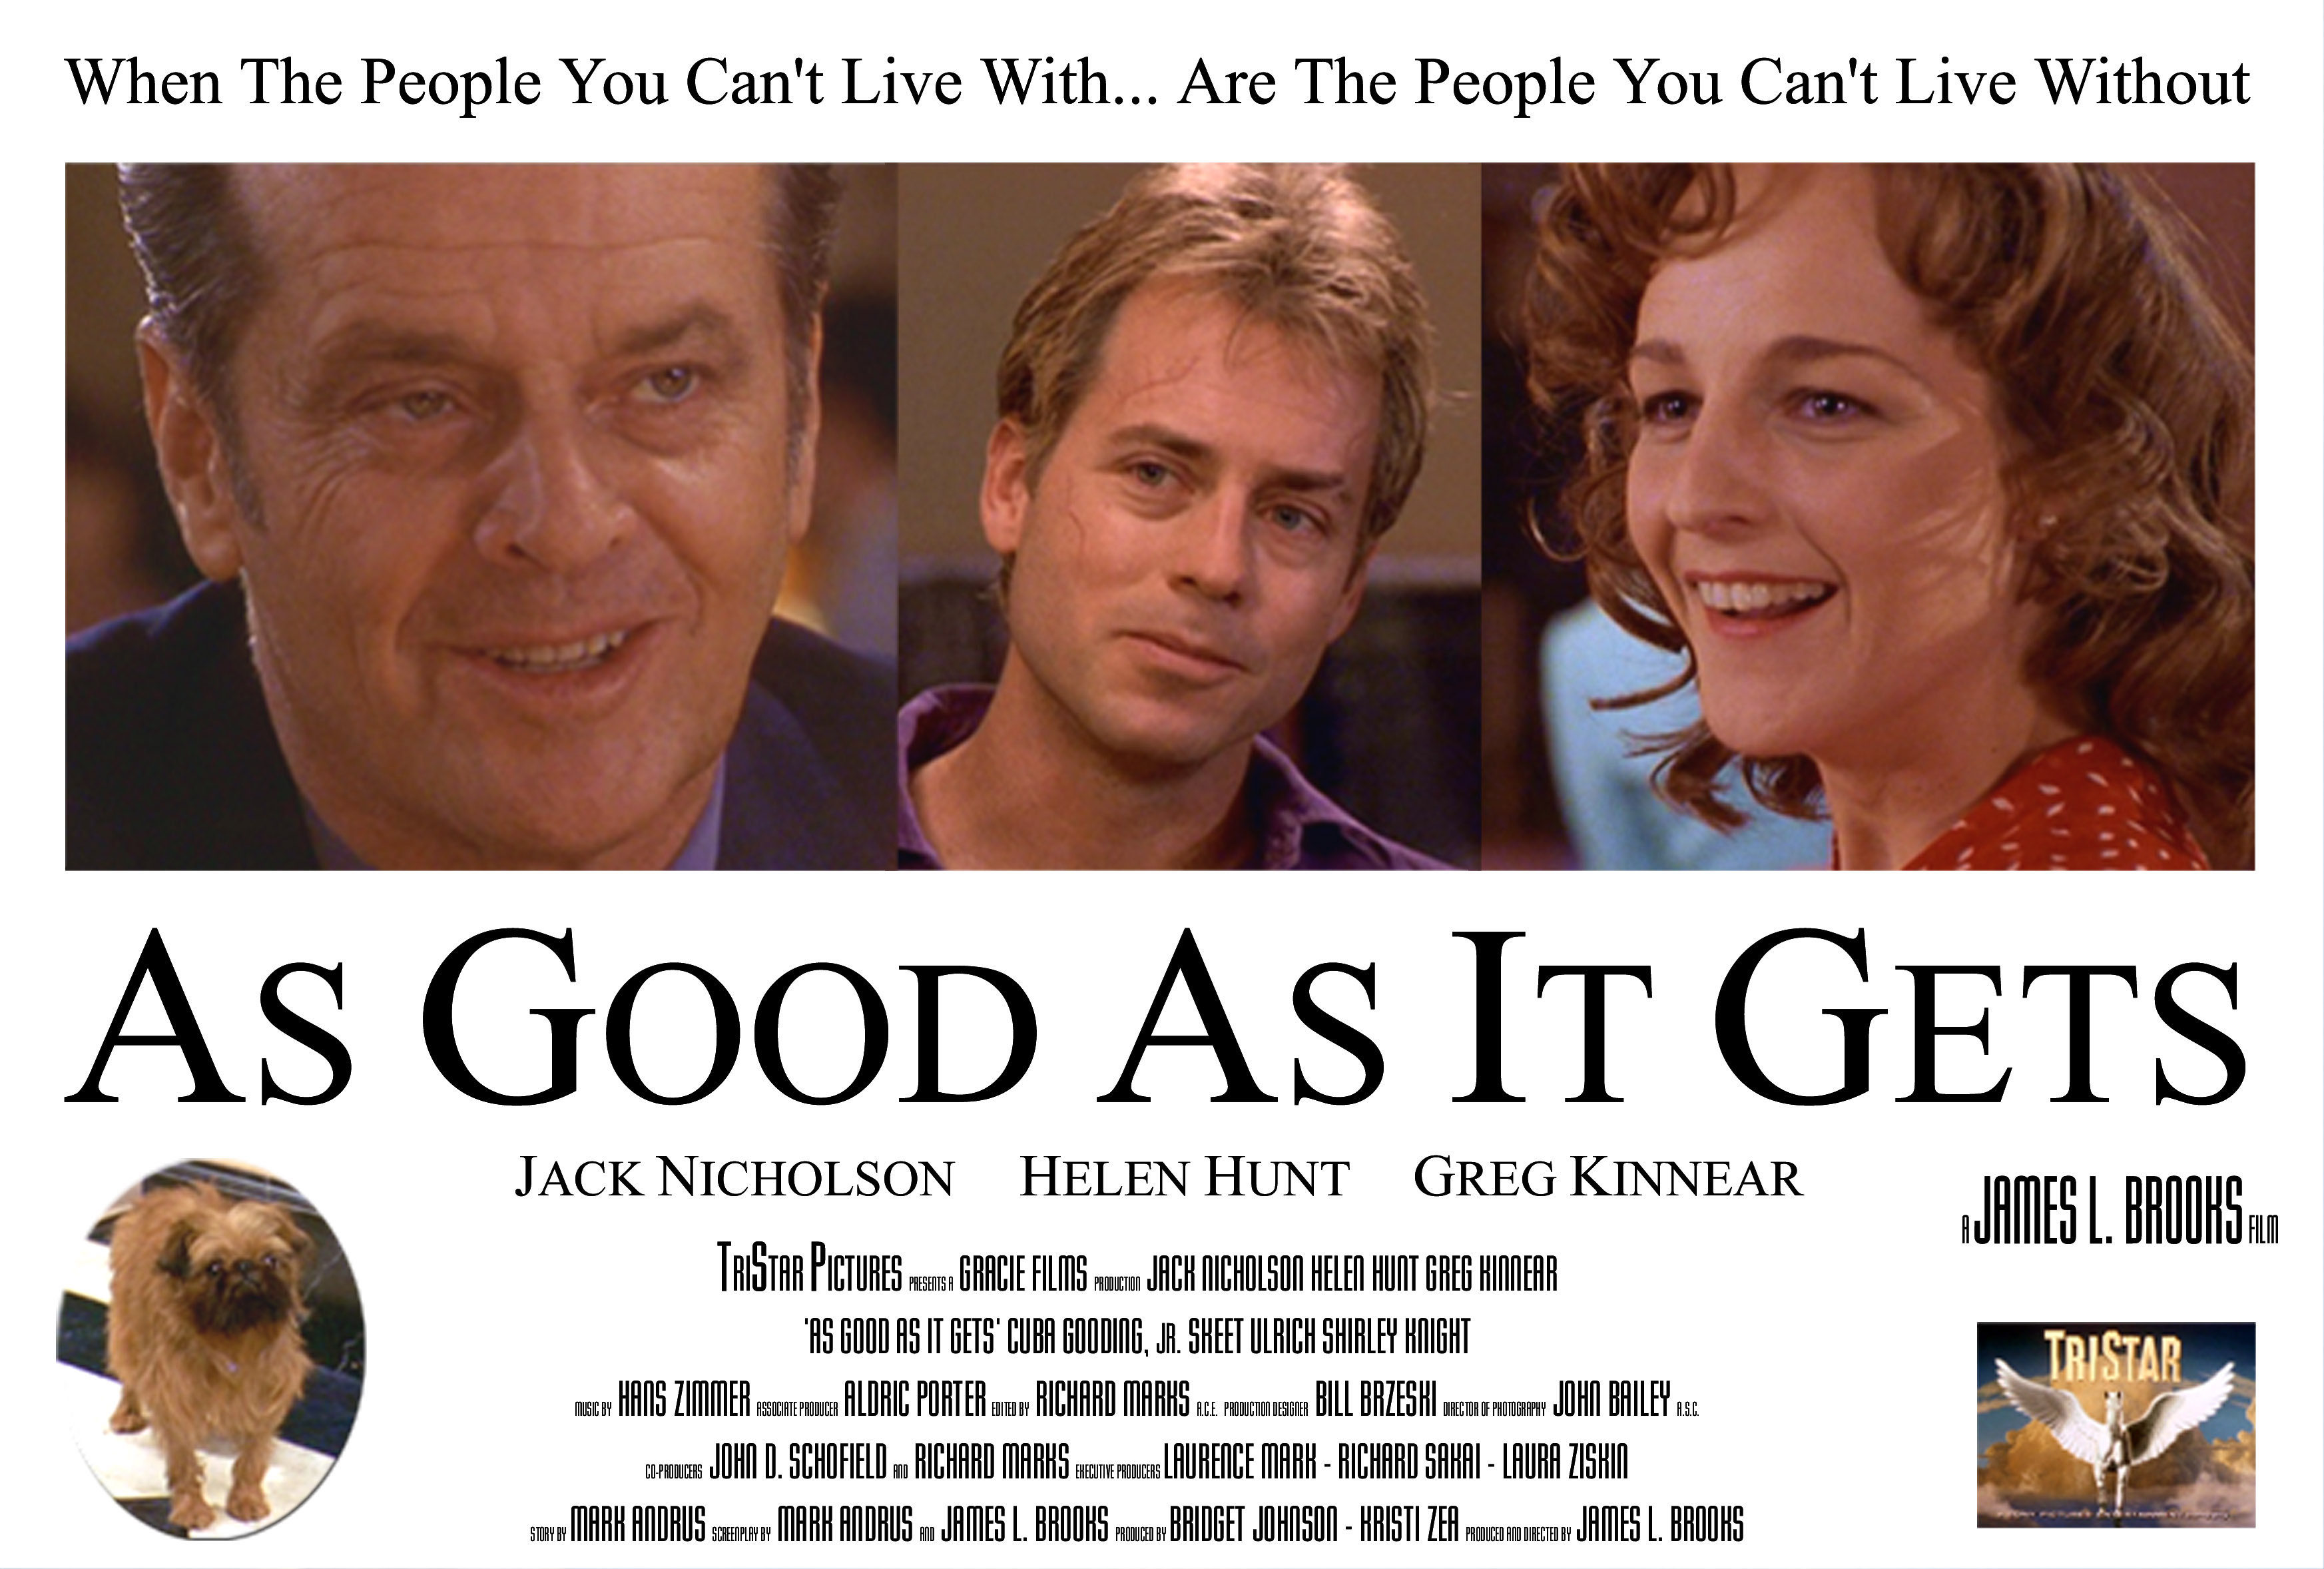 As Good As It Gets Poster - Jack Nicholson, Helen Hunt, Greg Kinnear, Jill the dog as Verdell